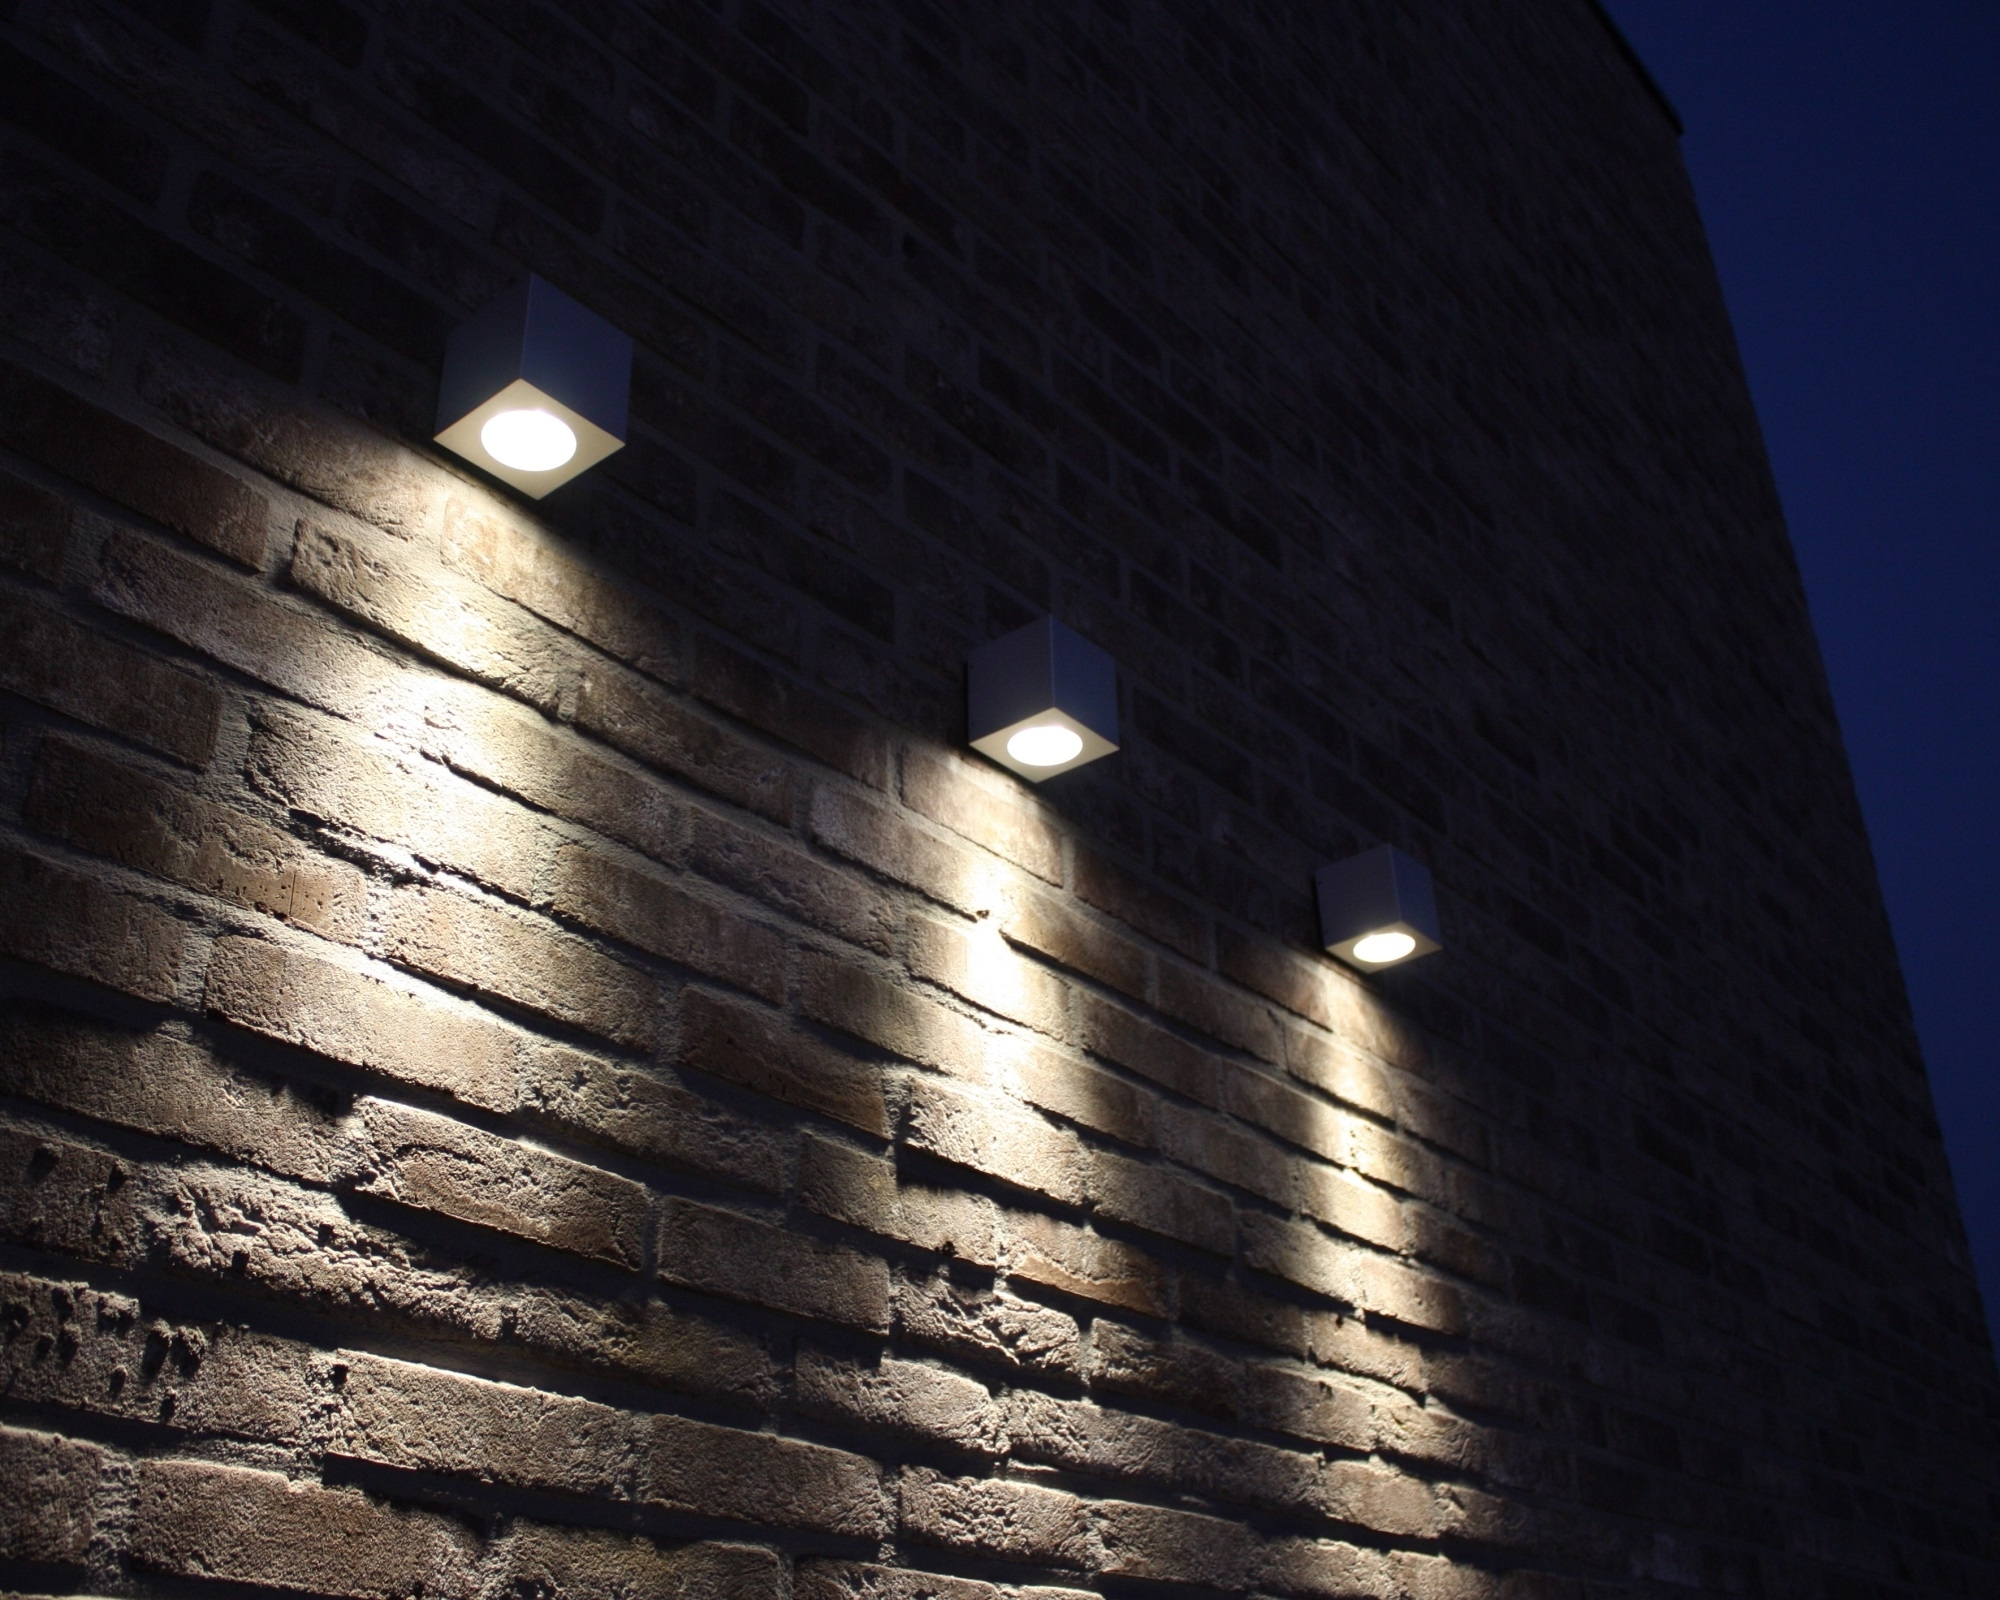 Black Outdoor Led Wall Lights Pertaining To Favorite Outdoor Wall Mounted Led Lighting For Red Exposed Brick Wall Ideas (View 12 of 20)